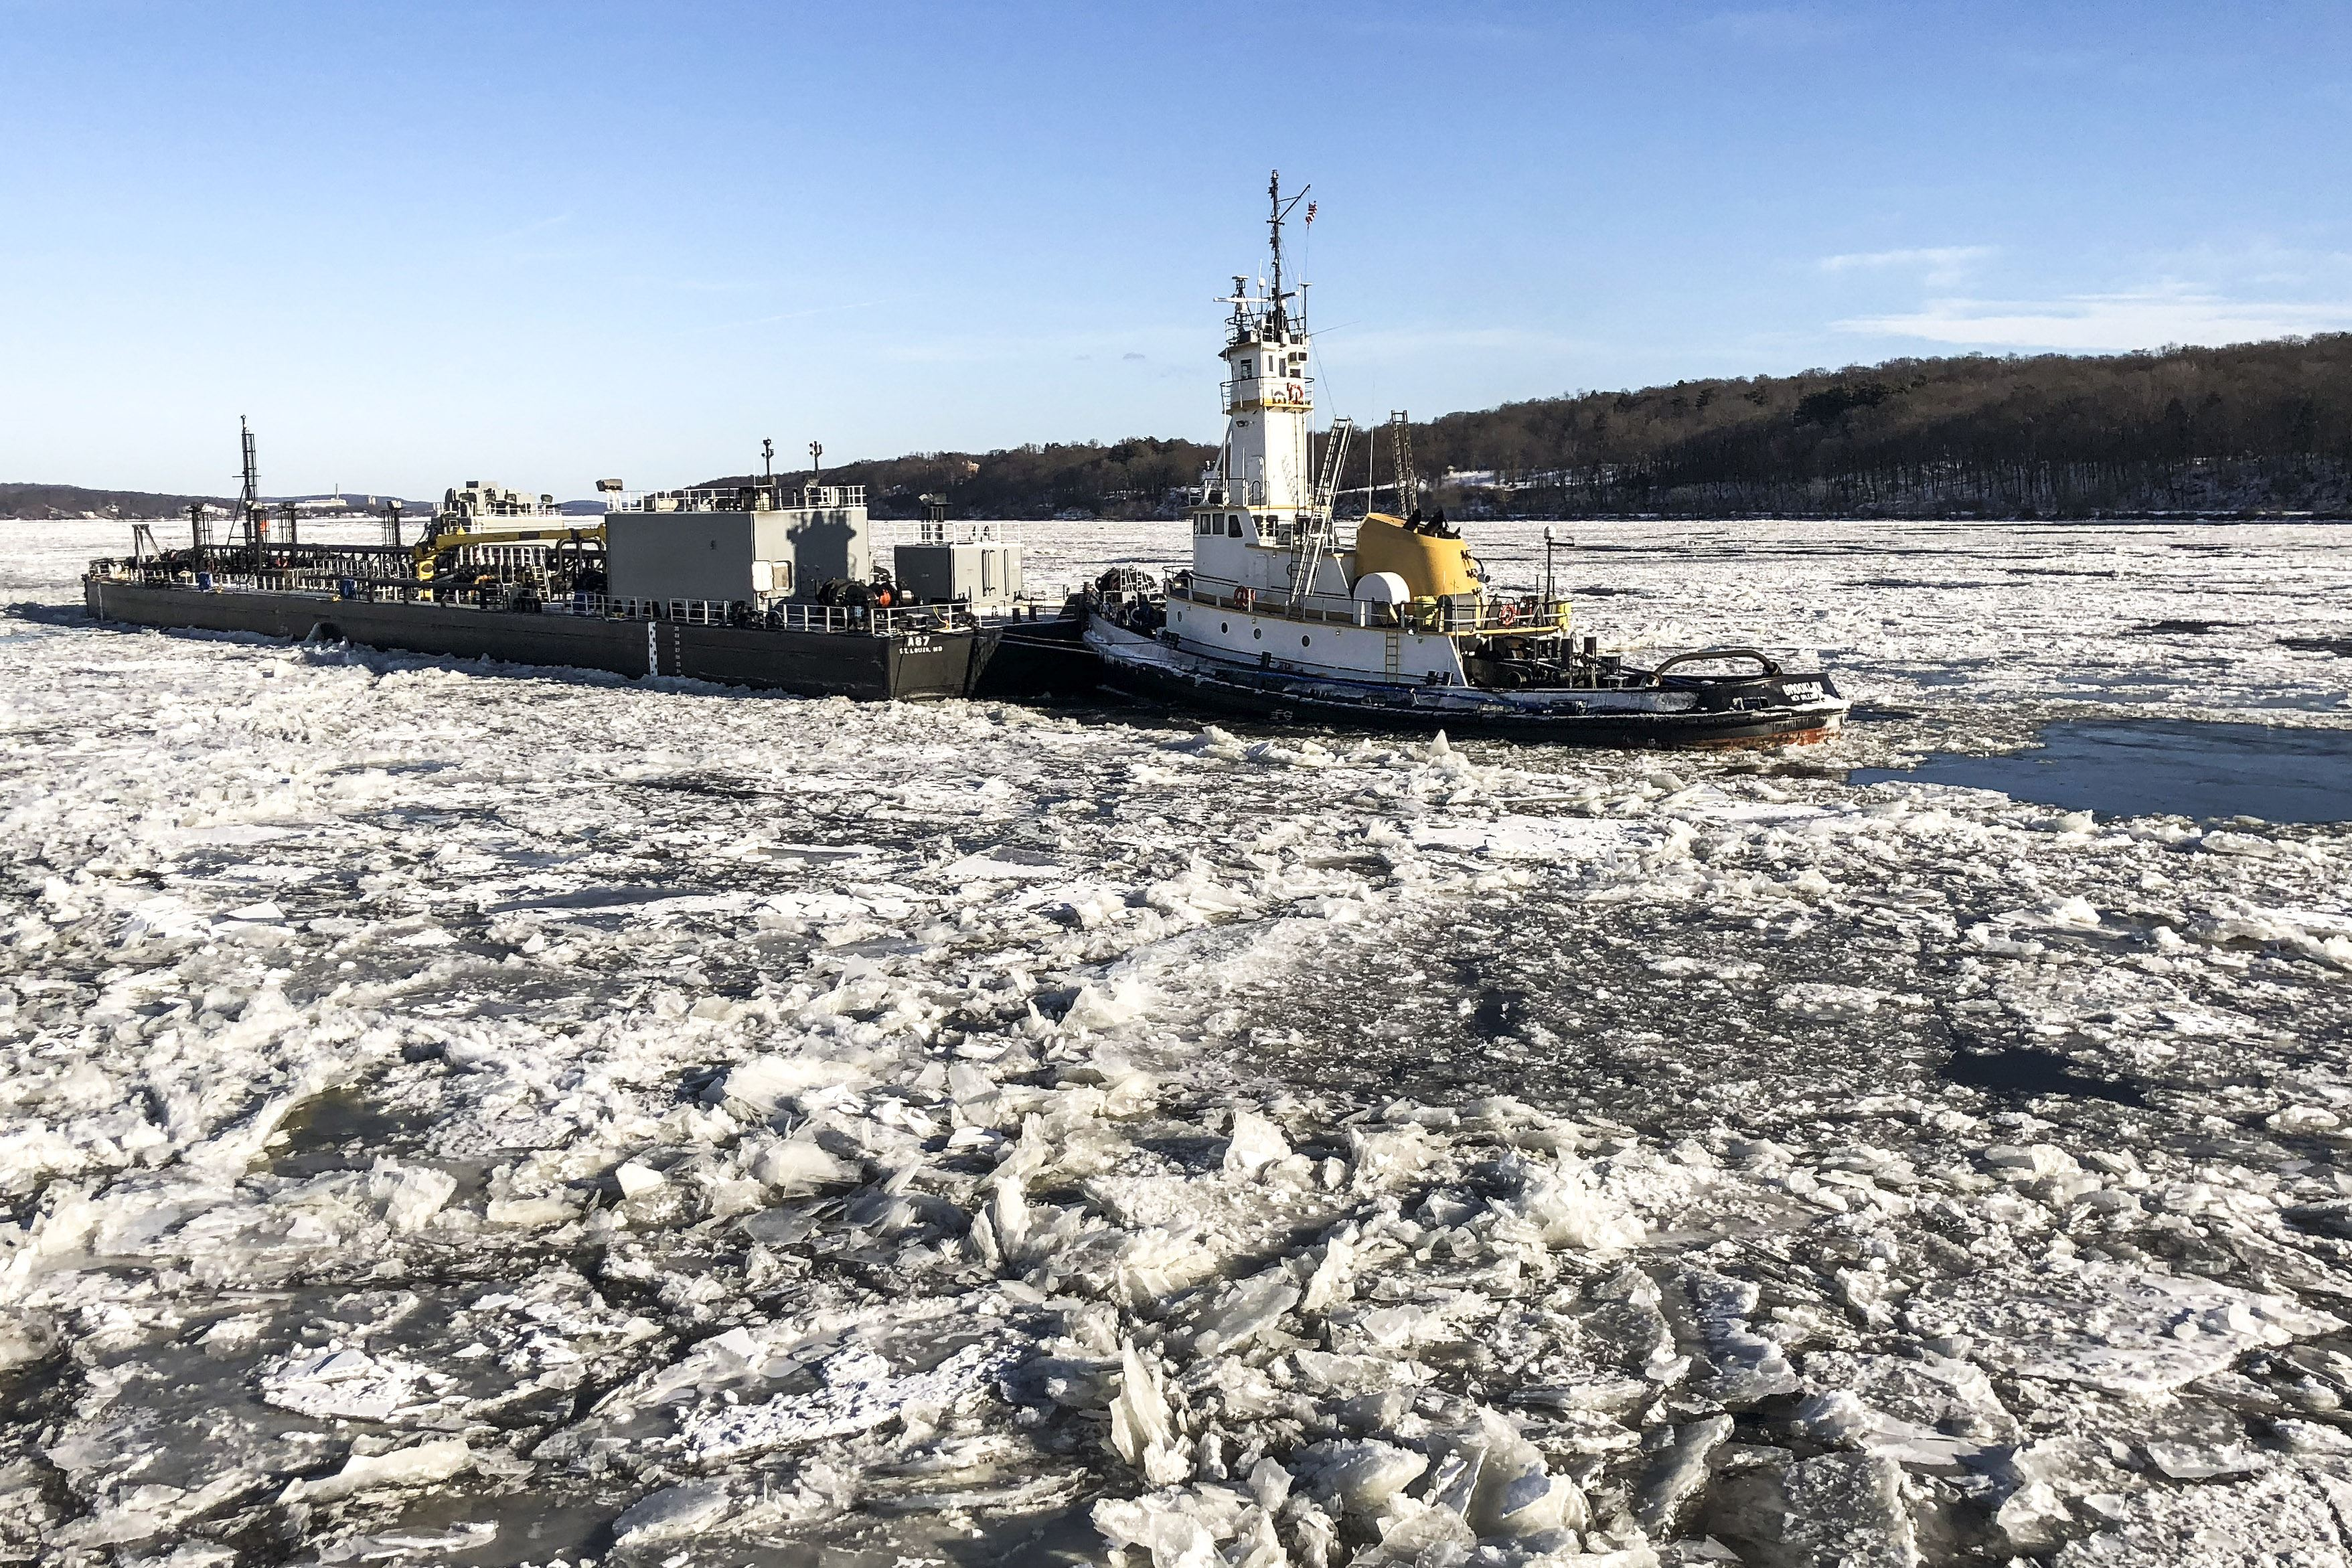 Coast Guard Cutter Penobscot Bay, an icebreaking tug, helps a tugboat break free from ice in the Hudson River near Saugerties, N.Y., Dec. 31, 2017. Coast Guard photo